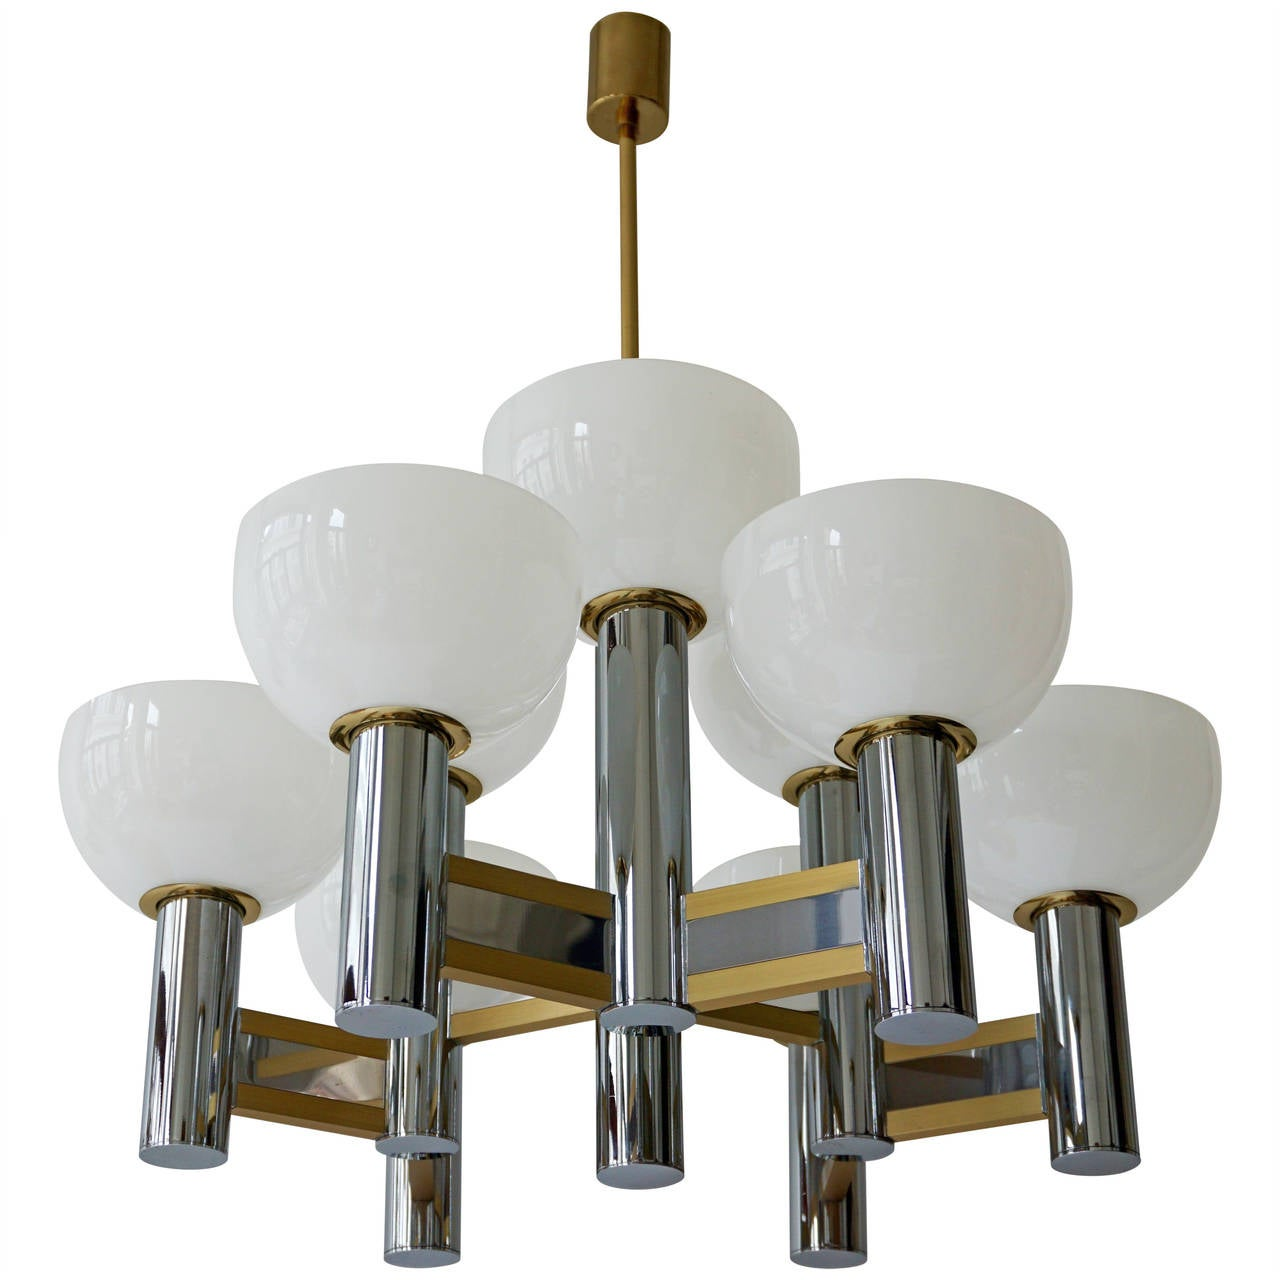 Geometric Brass Chandelier: Sciolari Geometric Chandelier For Sale At 1stdibs